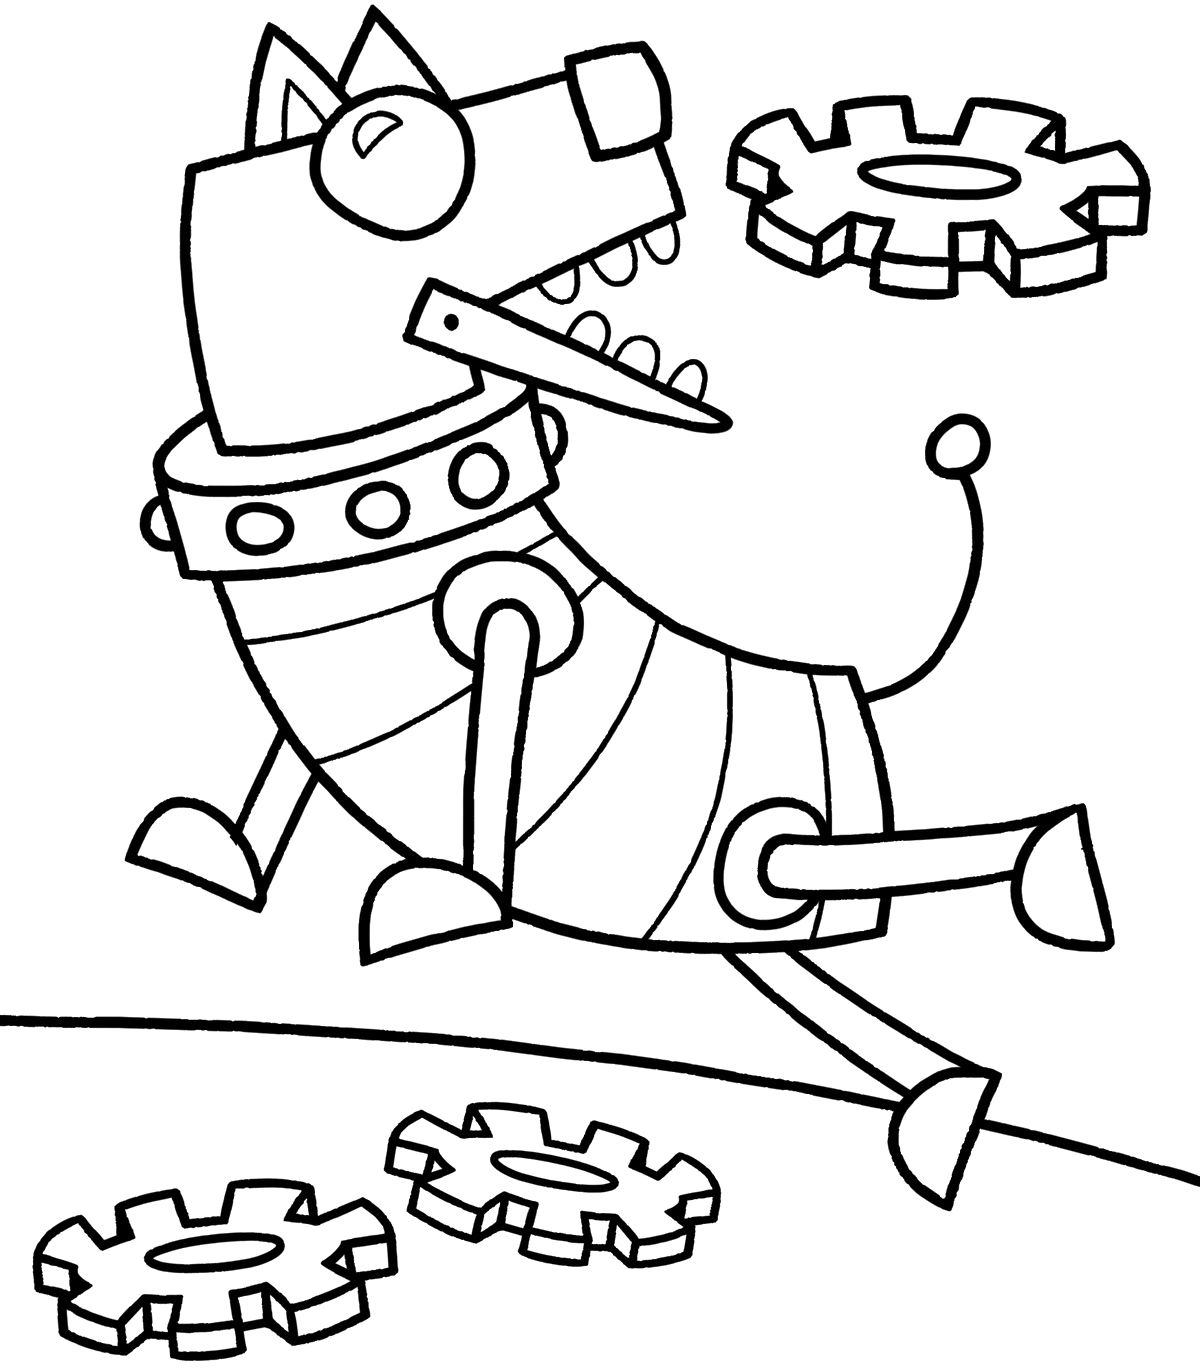 Robot Dog Click On The Image To Download This Fun Loving Creature And Colour Him In During The